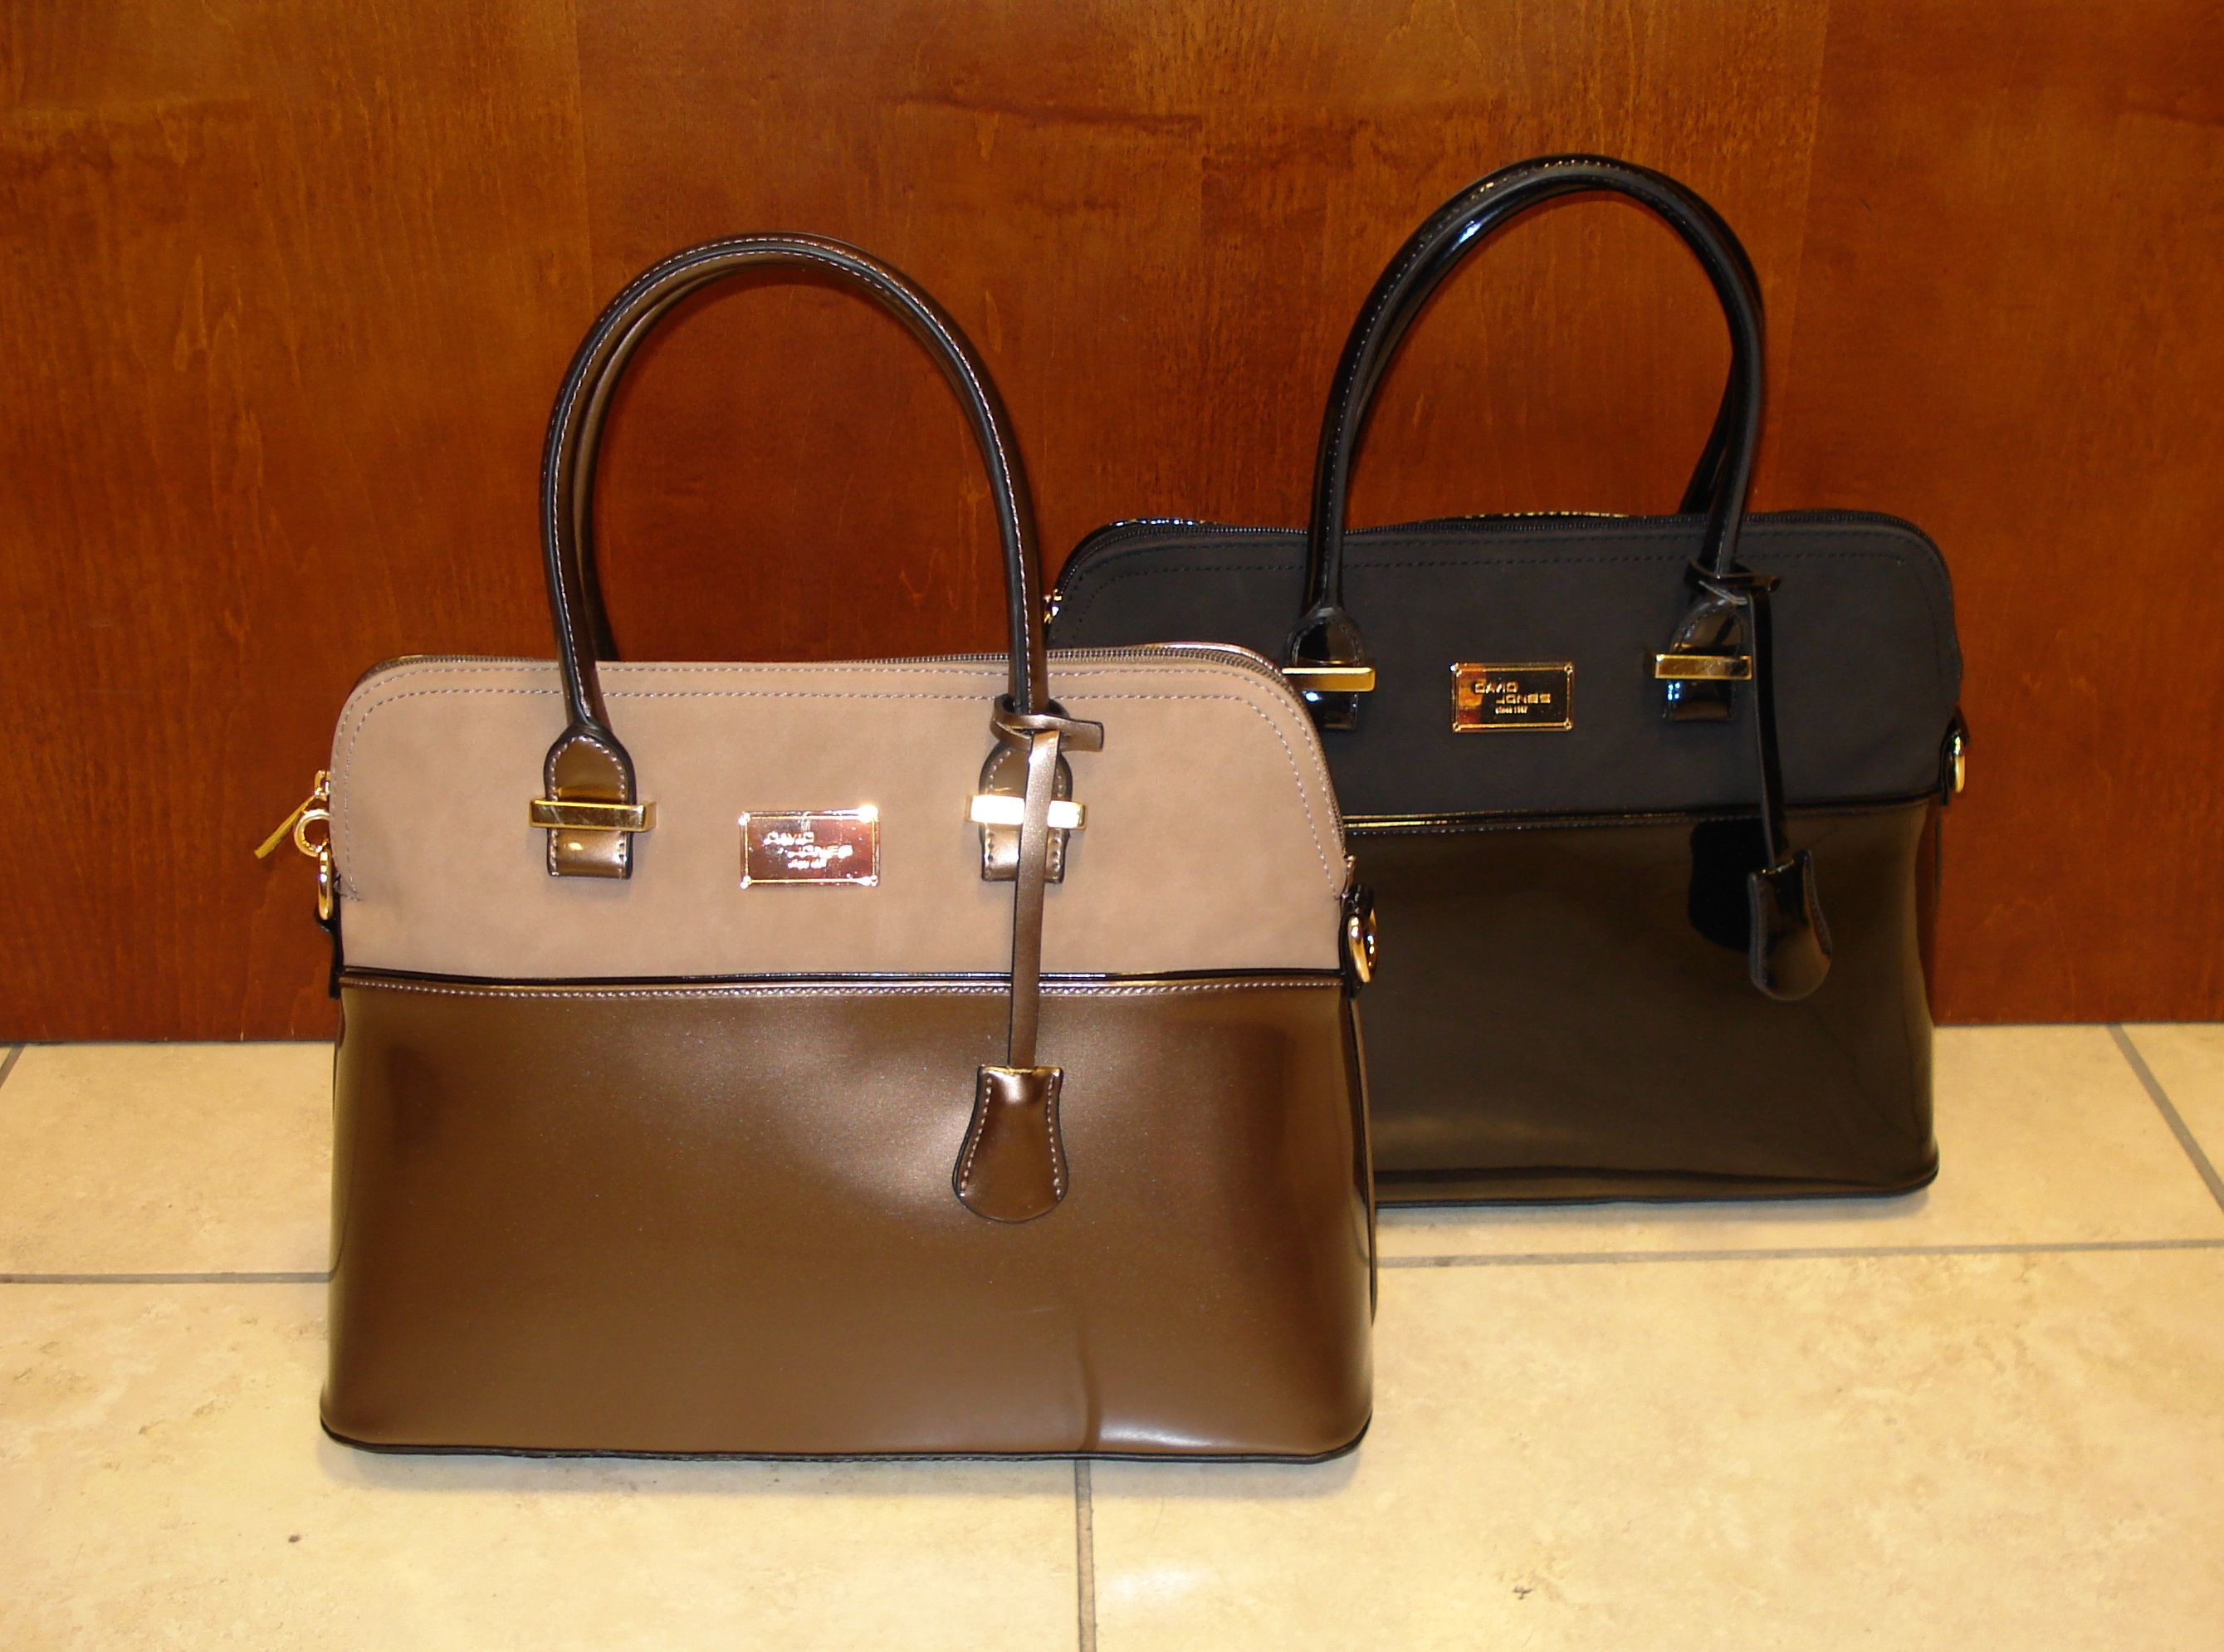 David Jones Handbag Davidjones Handbags Fashion Accessories Polopark Stvital